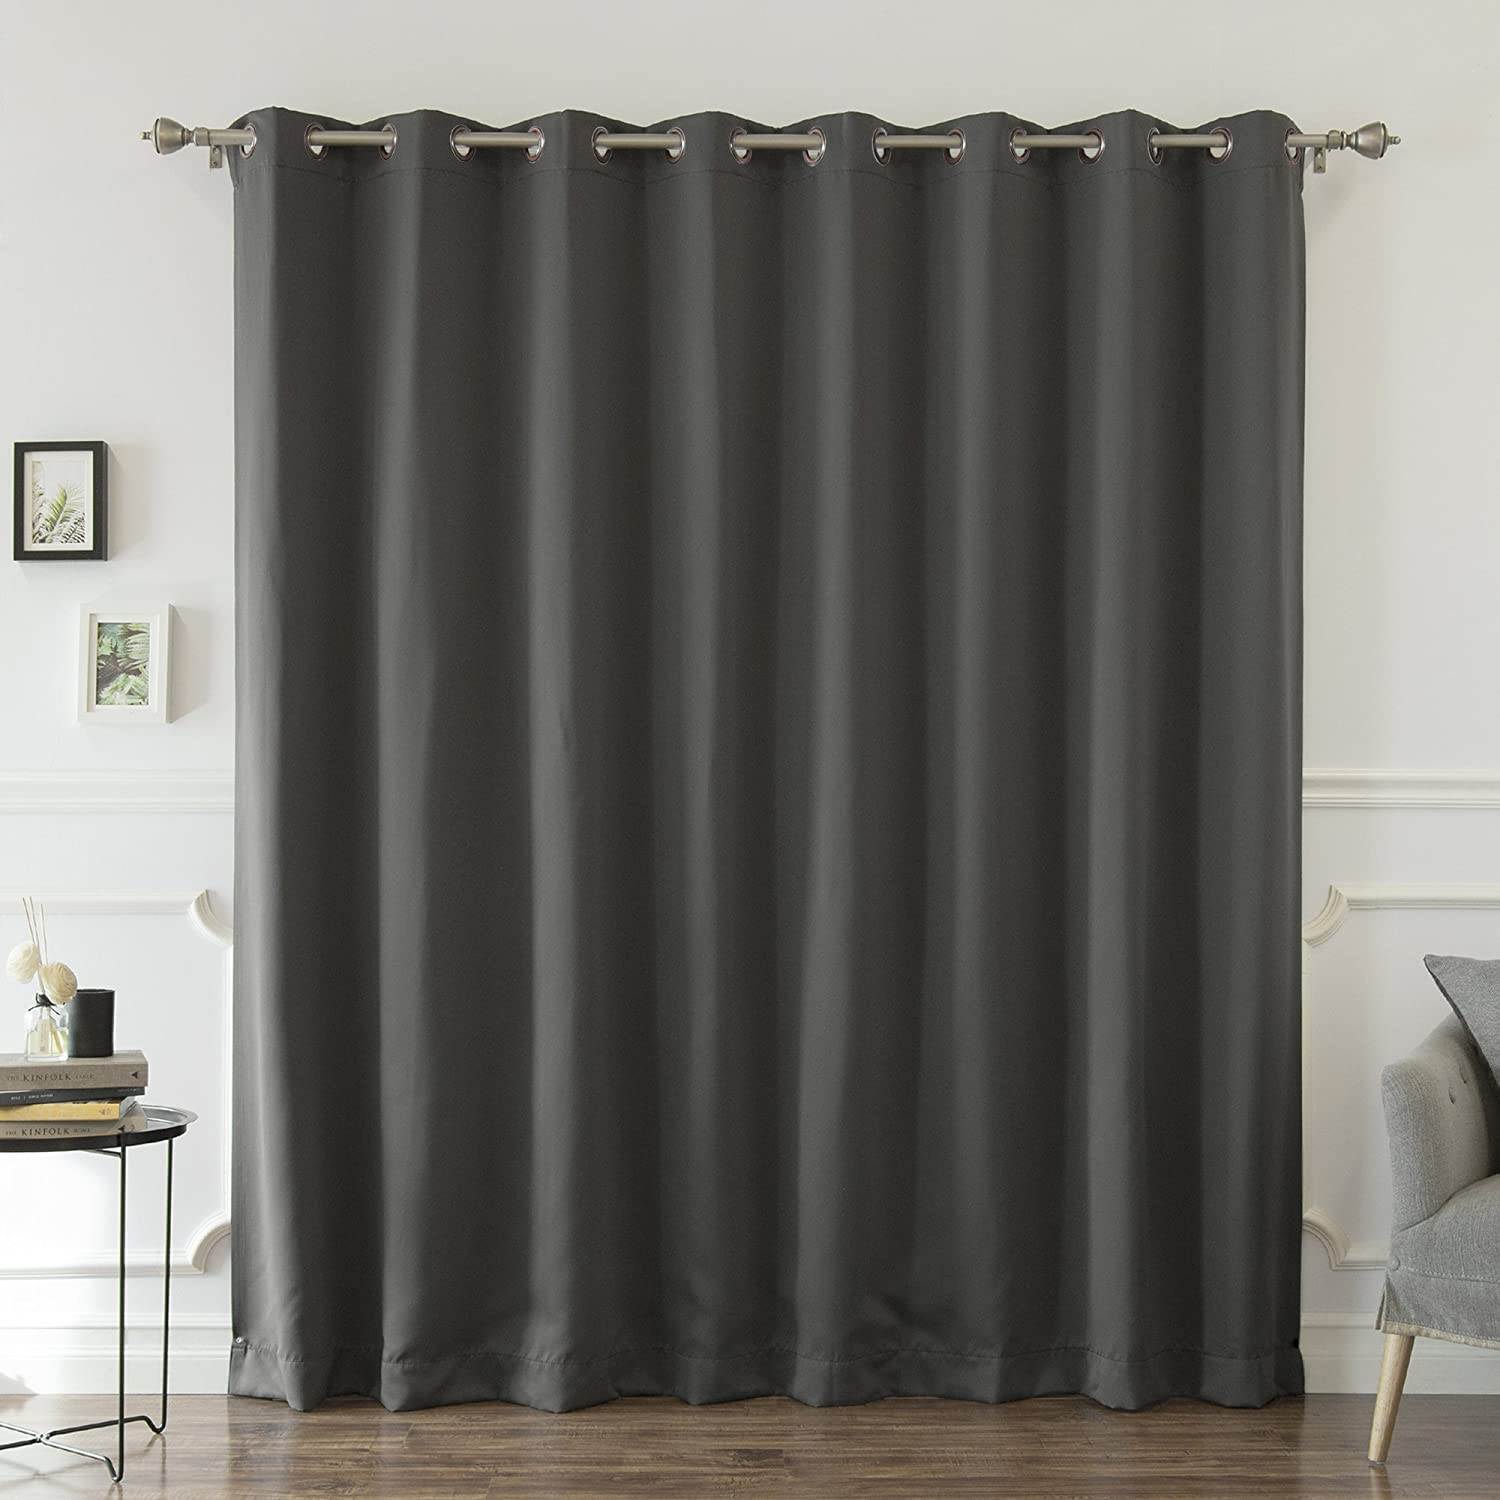 Best Home Fashion Wide Width Thermal Insulated Blackout Curtain - Antique Bronze Grommet Top - Dark Grey - 100